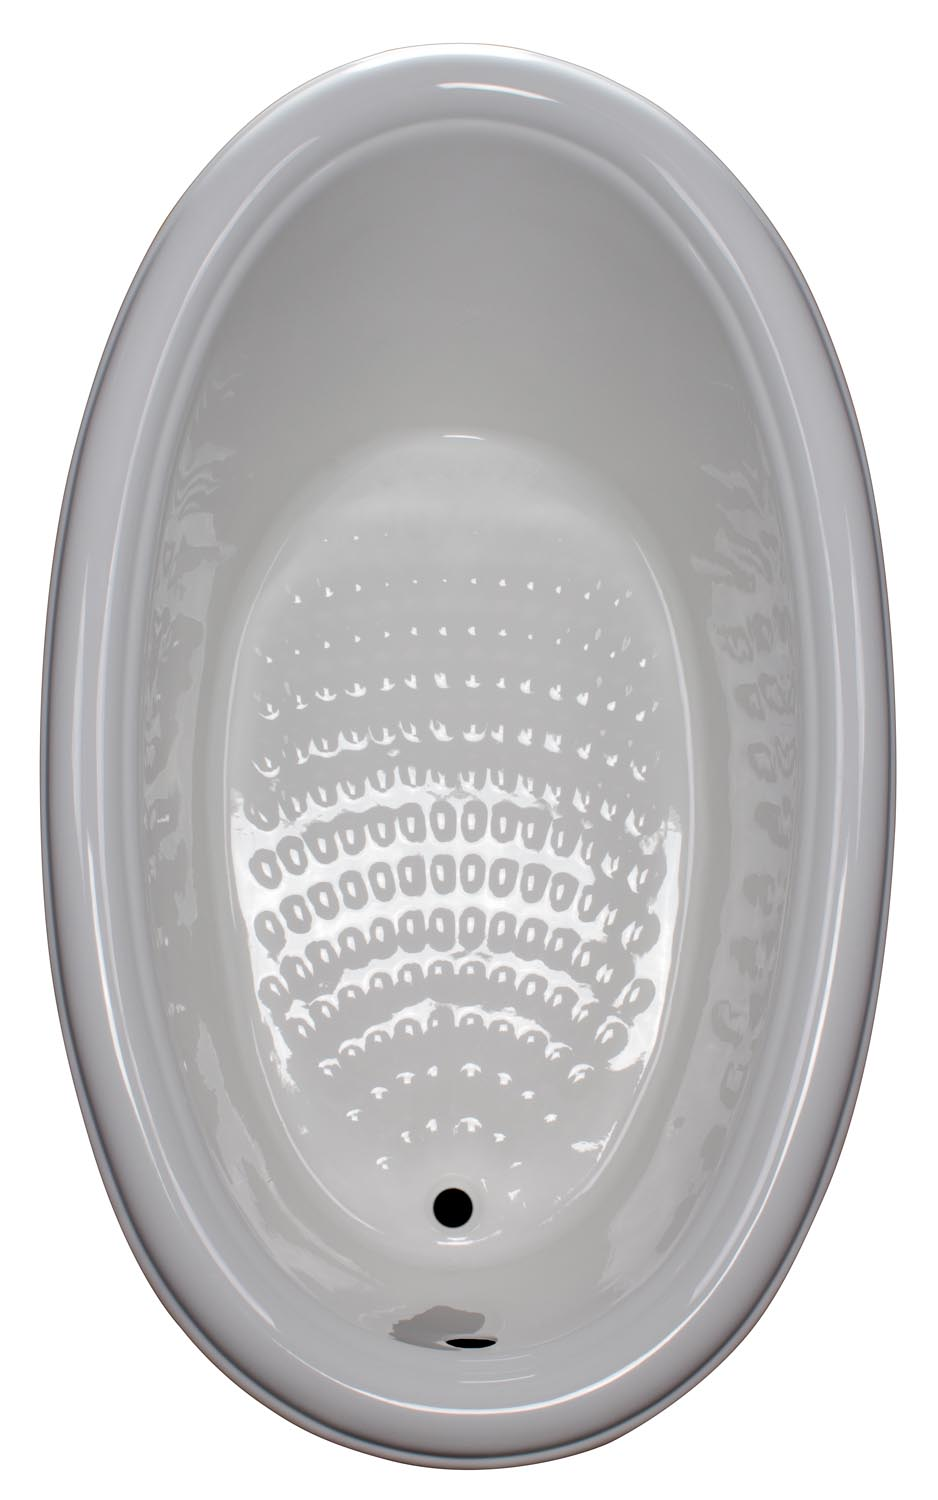 Groovy Br 40 Tub Jet Soaker Air No Drop Tub Installation Tub Shower Combo Drop houzz-03 Drop In Tub